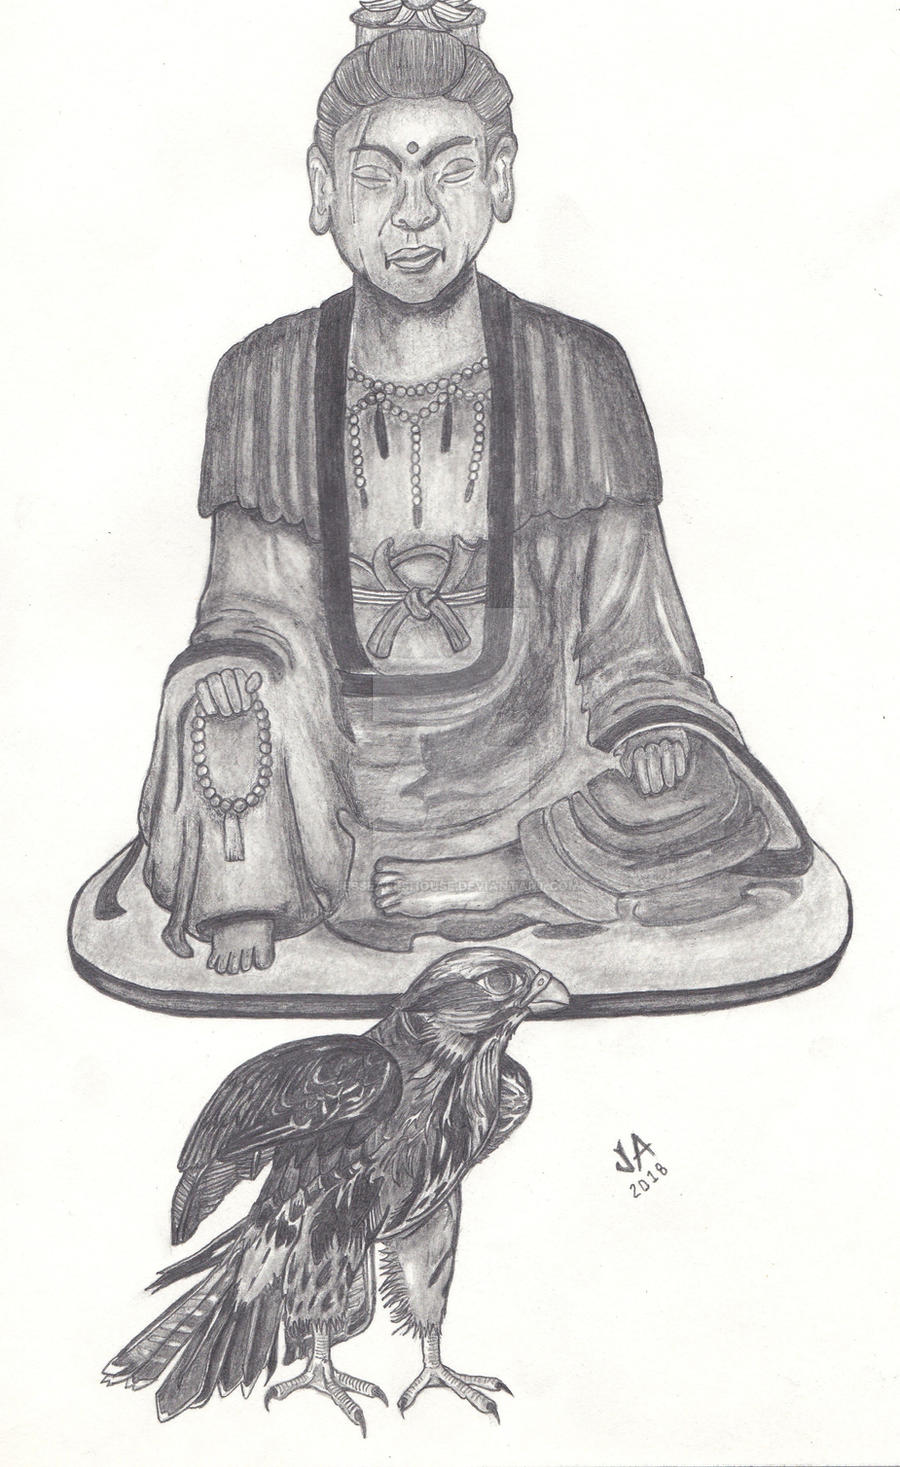 The Buddah and the Falcon Sketch by JesseAllshouse